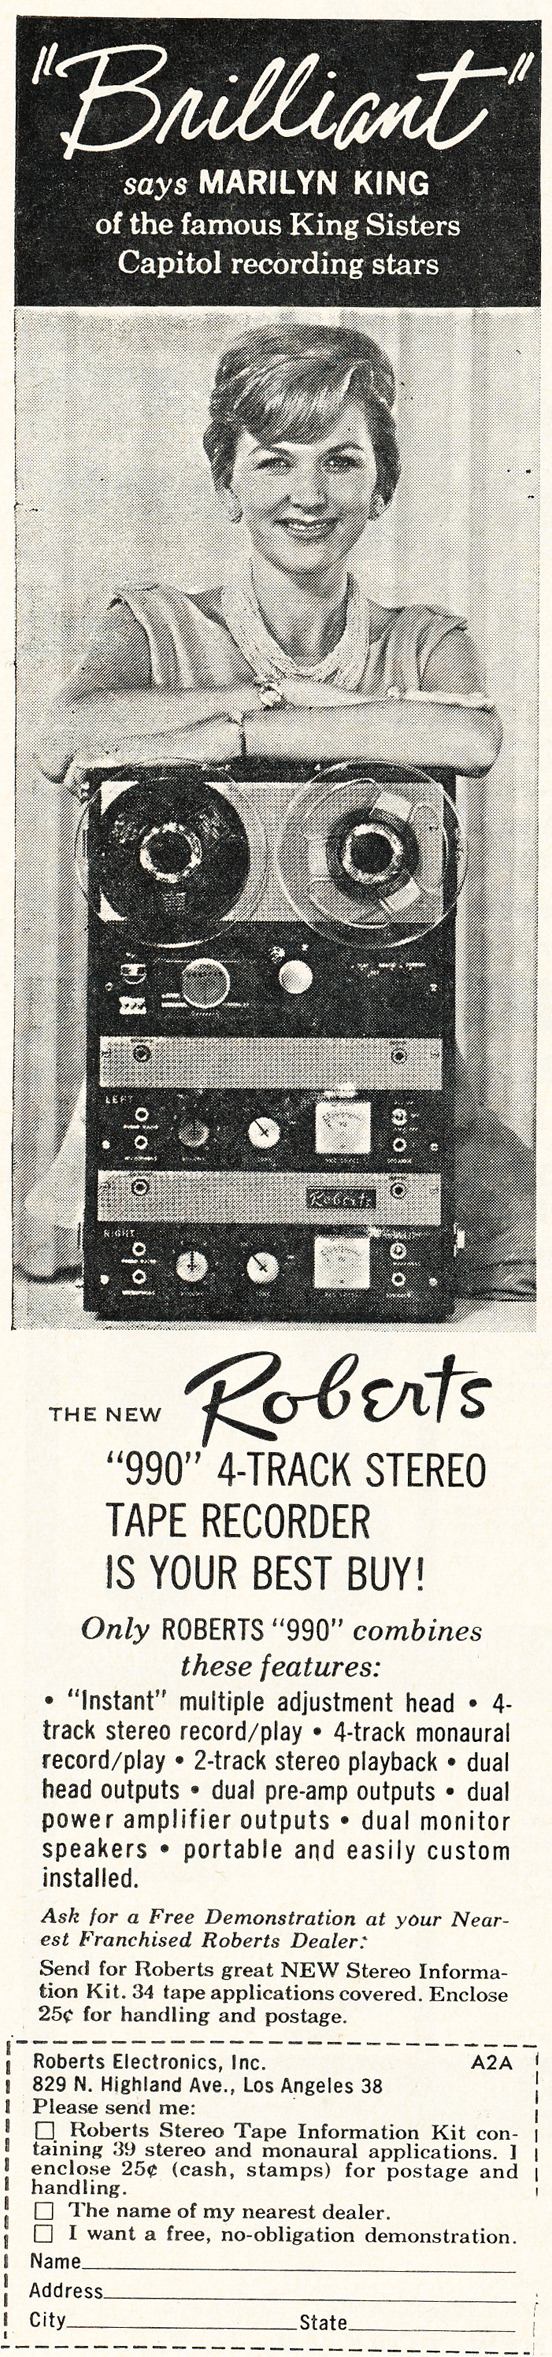 1961 ad for the Roberts 990 reel to reel tape recorder featuring Marilyn King in Reel2ReelTexas.com's vintage recording collection